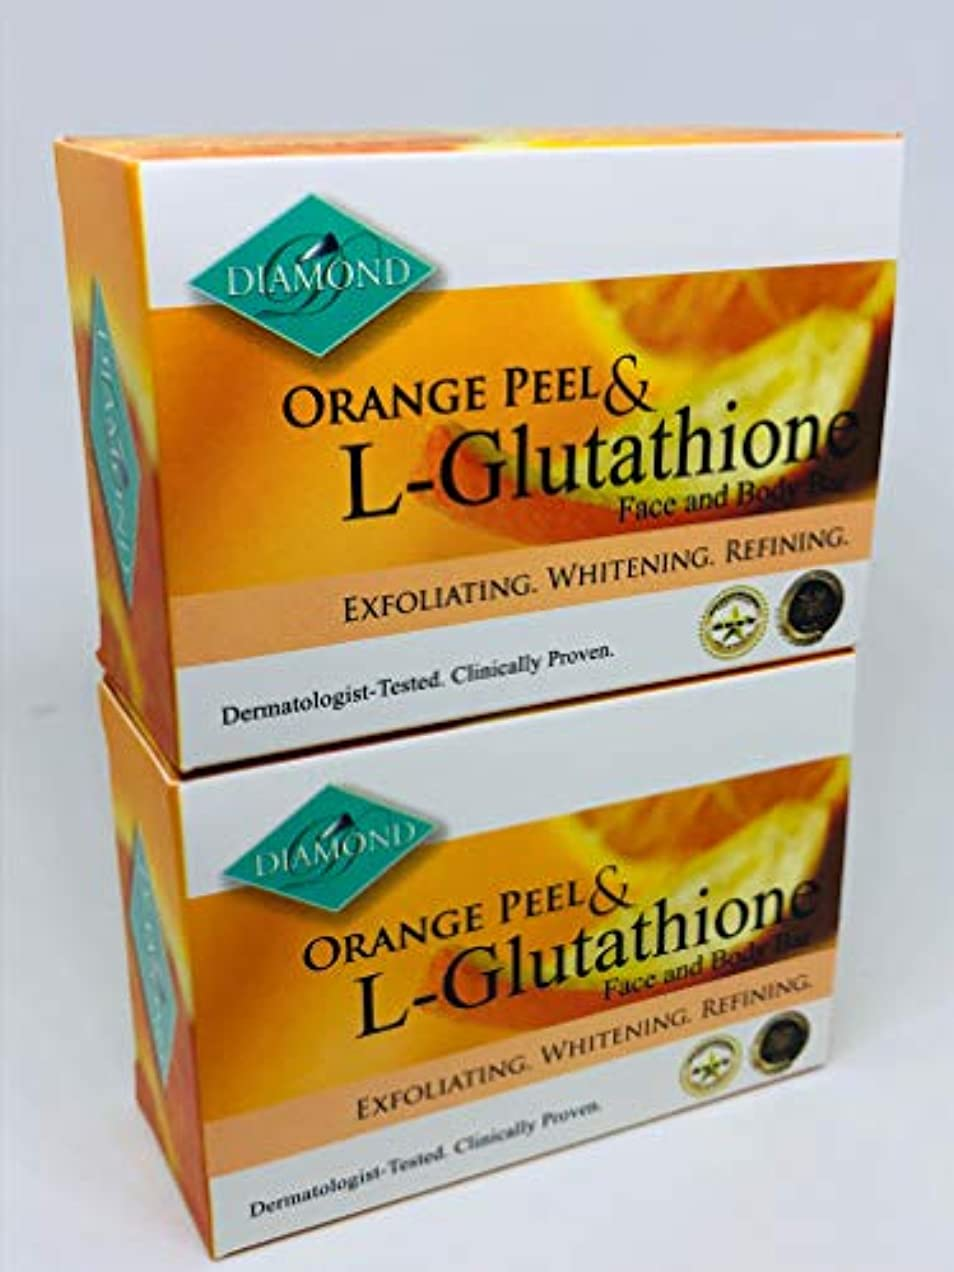 DIAMOND ORANGE PEEL&Glutathione soap/オレンジピール&グルタチオン配合ソープ(美容石けん) 150g×2個 正規輸入品Harmony & Wellness Japan distributor! Exclusive contract with manufacturer